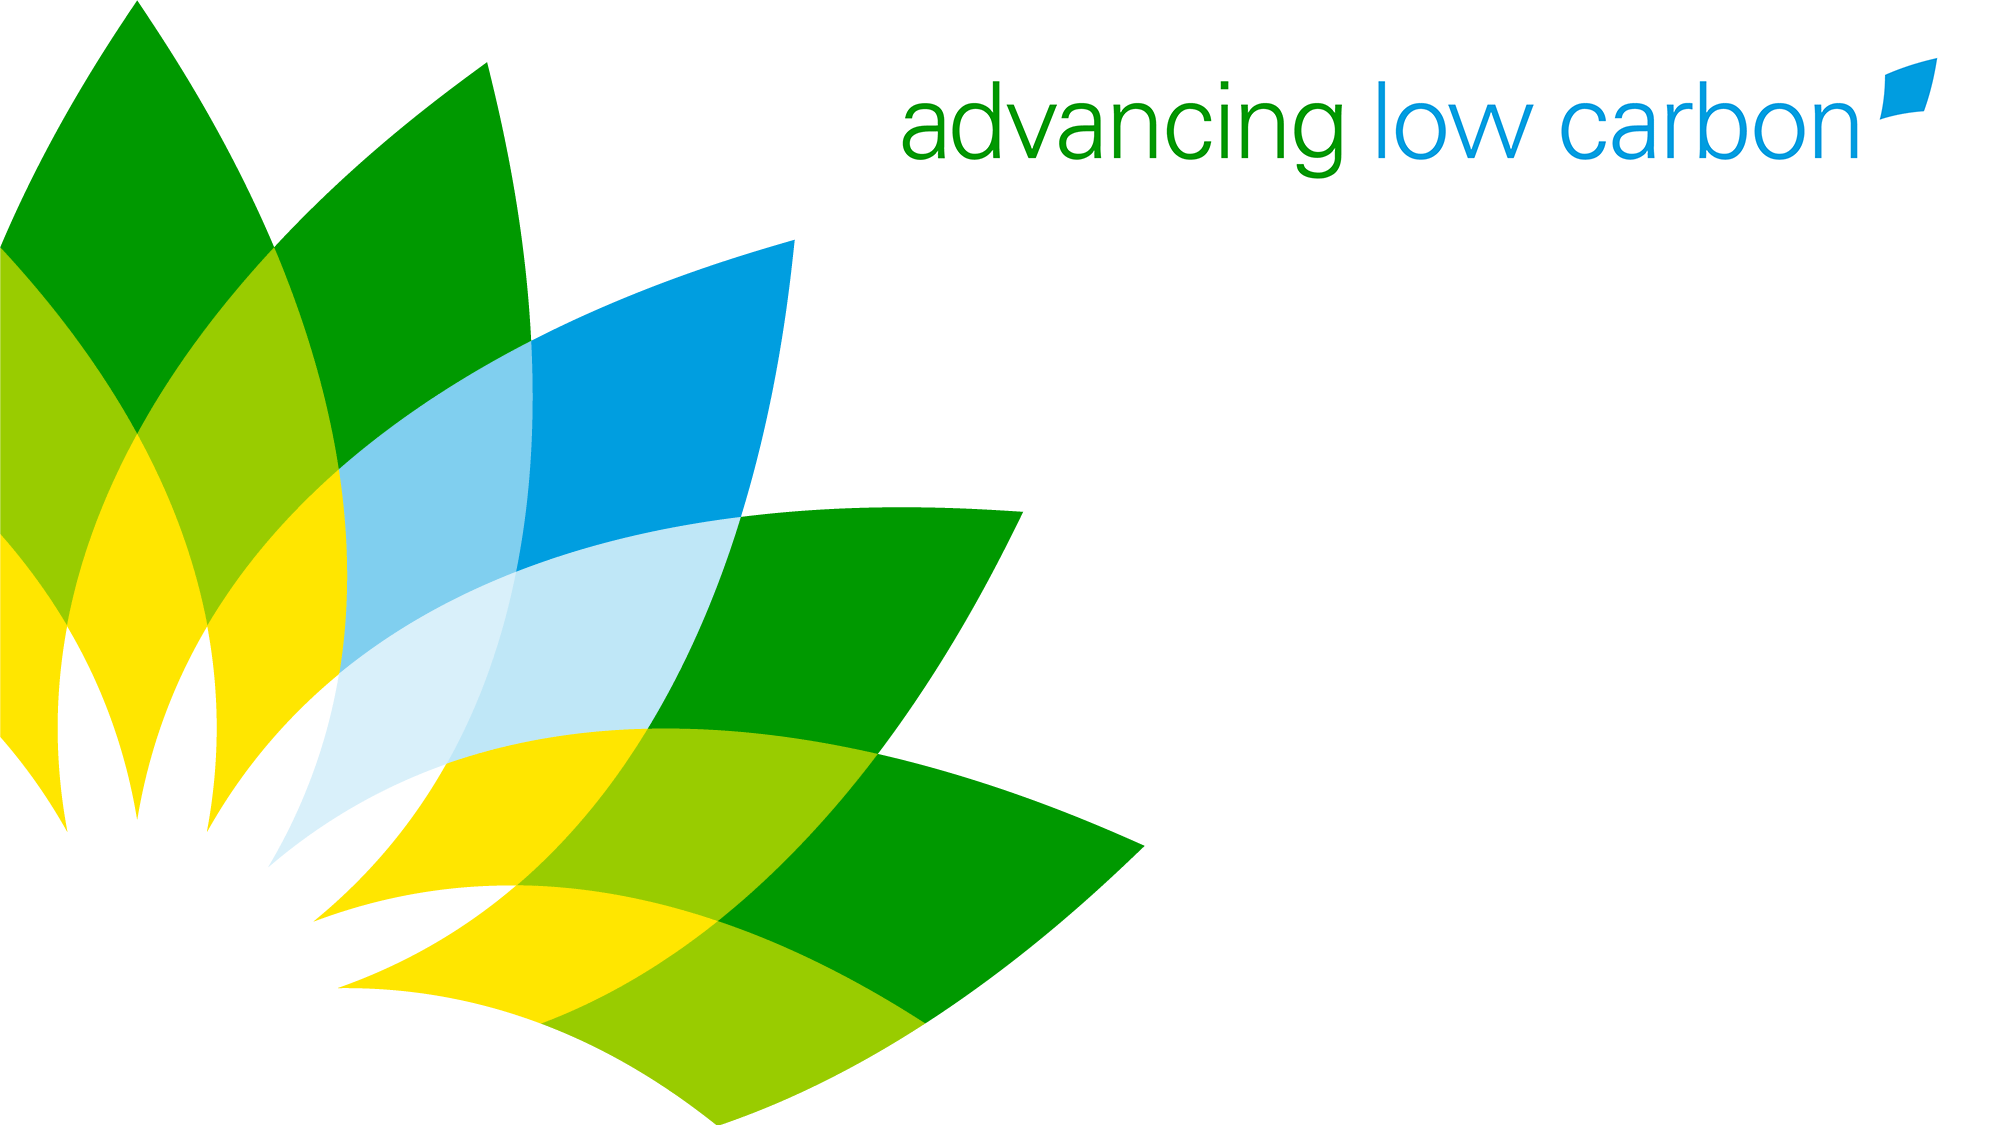 BP's Advancing Low Carbon accreditation programme | Sustainability